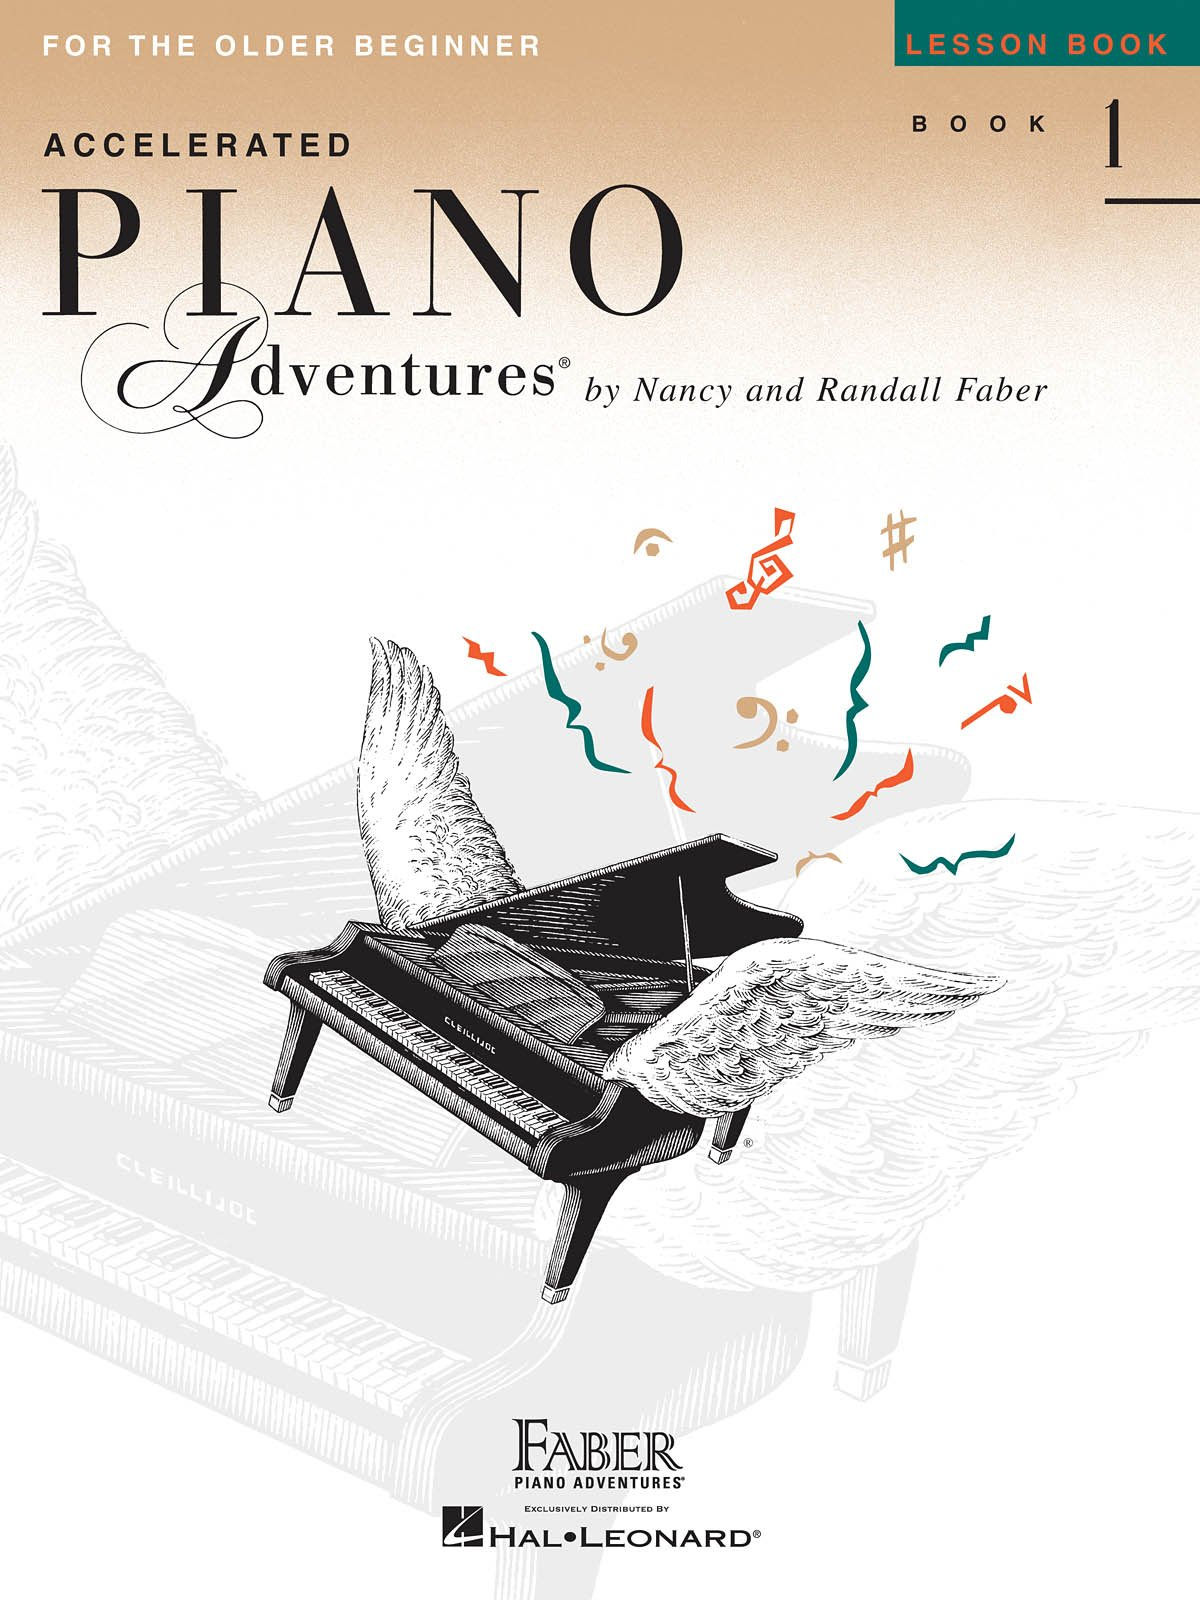 Accelerated Piano Adventures for the Older Beginner, Lesson, Book 1